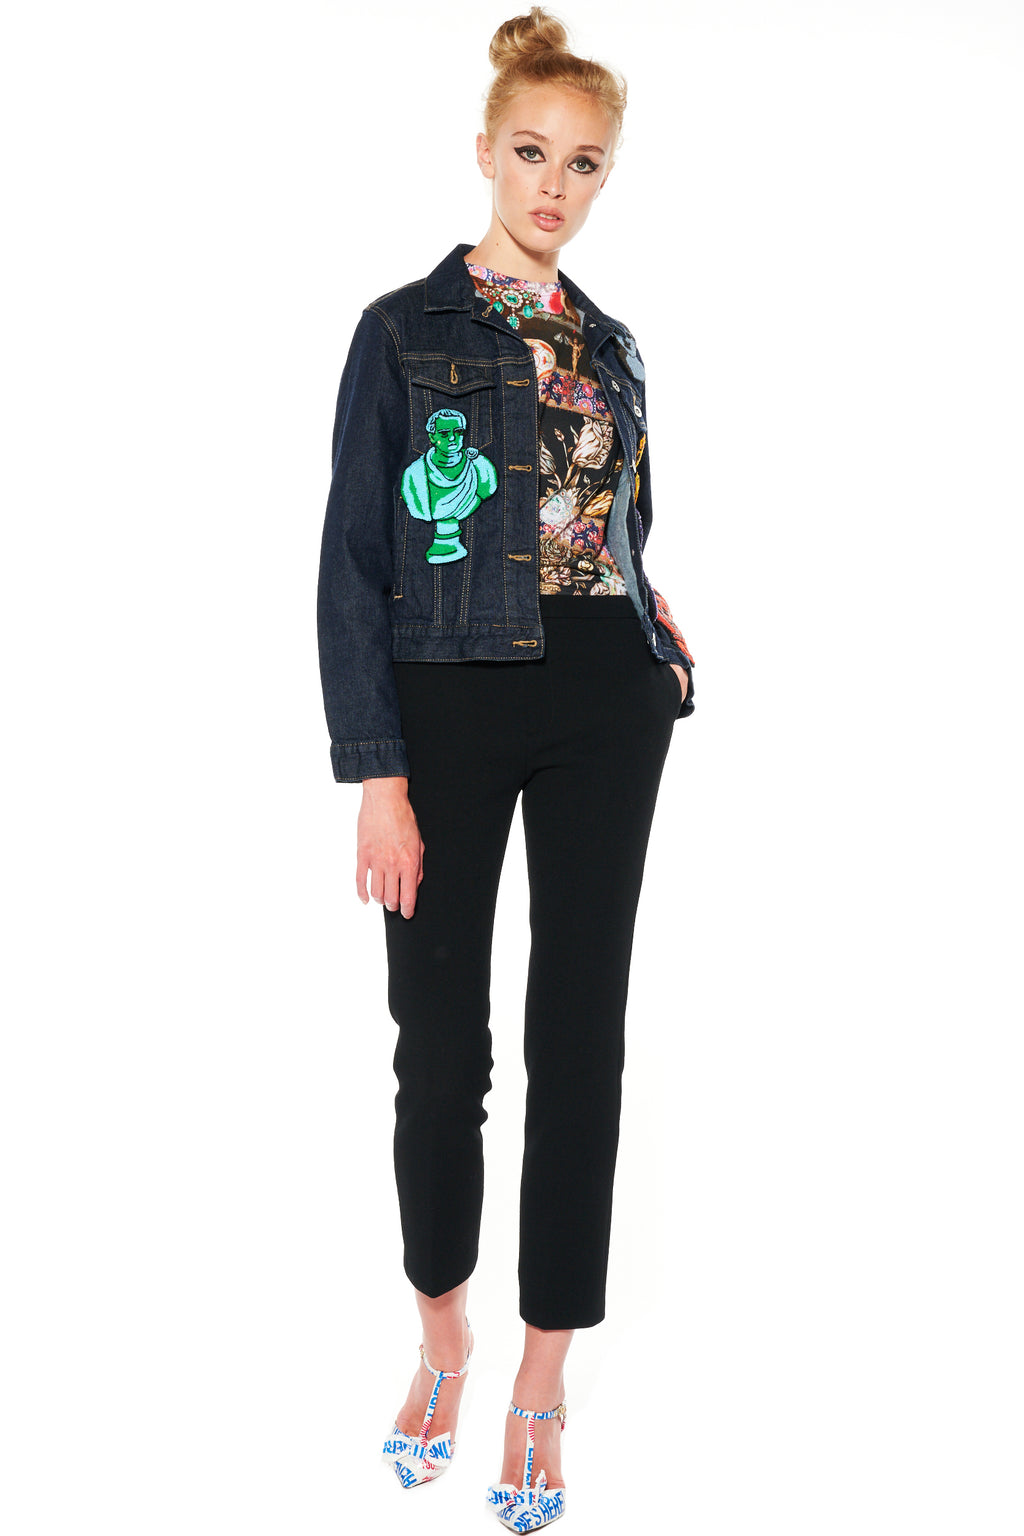 COLORFUL BUSTS DENIM JACKET - Women's Jackets & Coats - Libertine